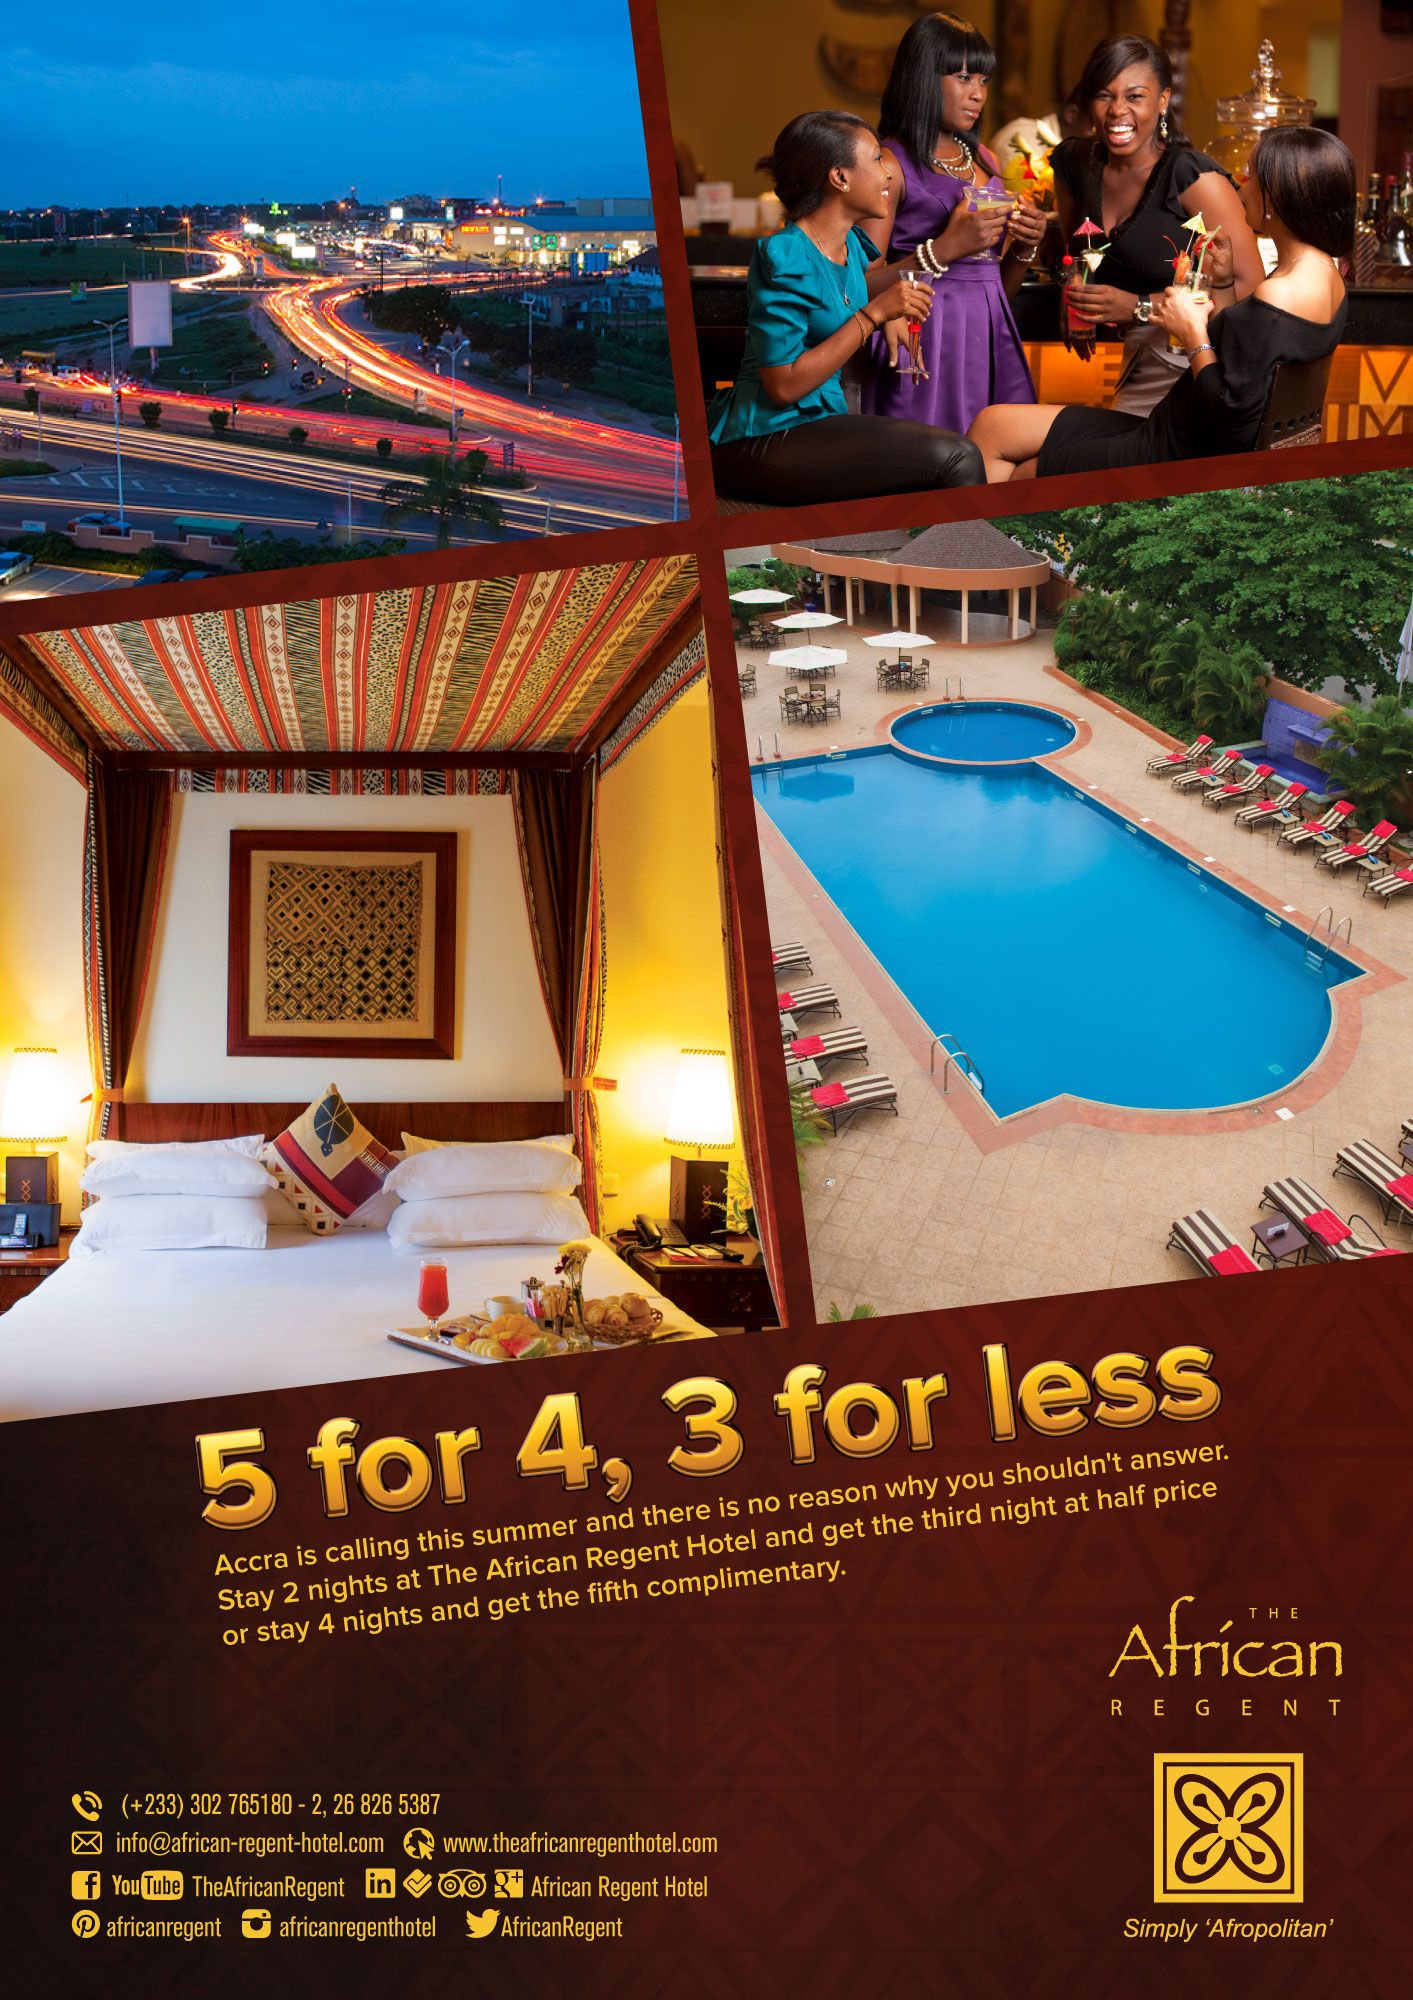 Accra Is Calling And The Destination African Regent Hotel